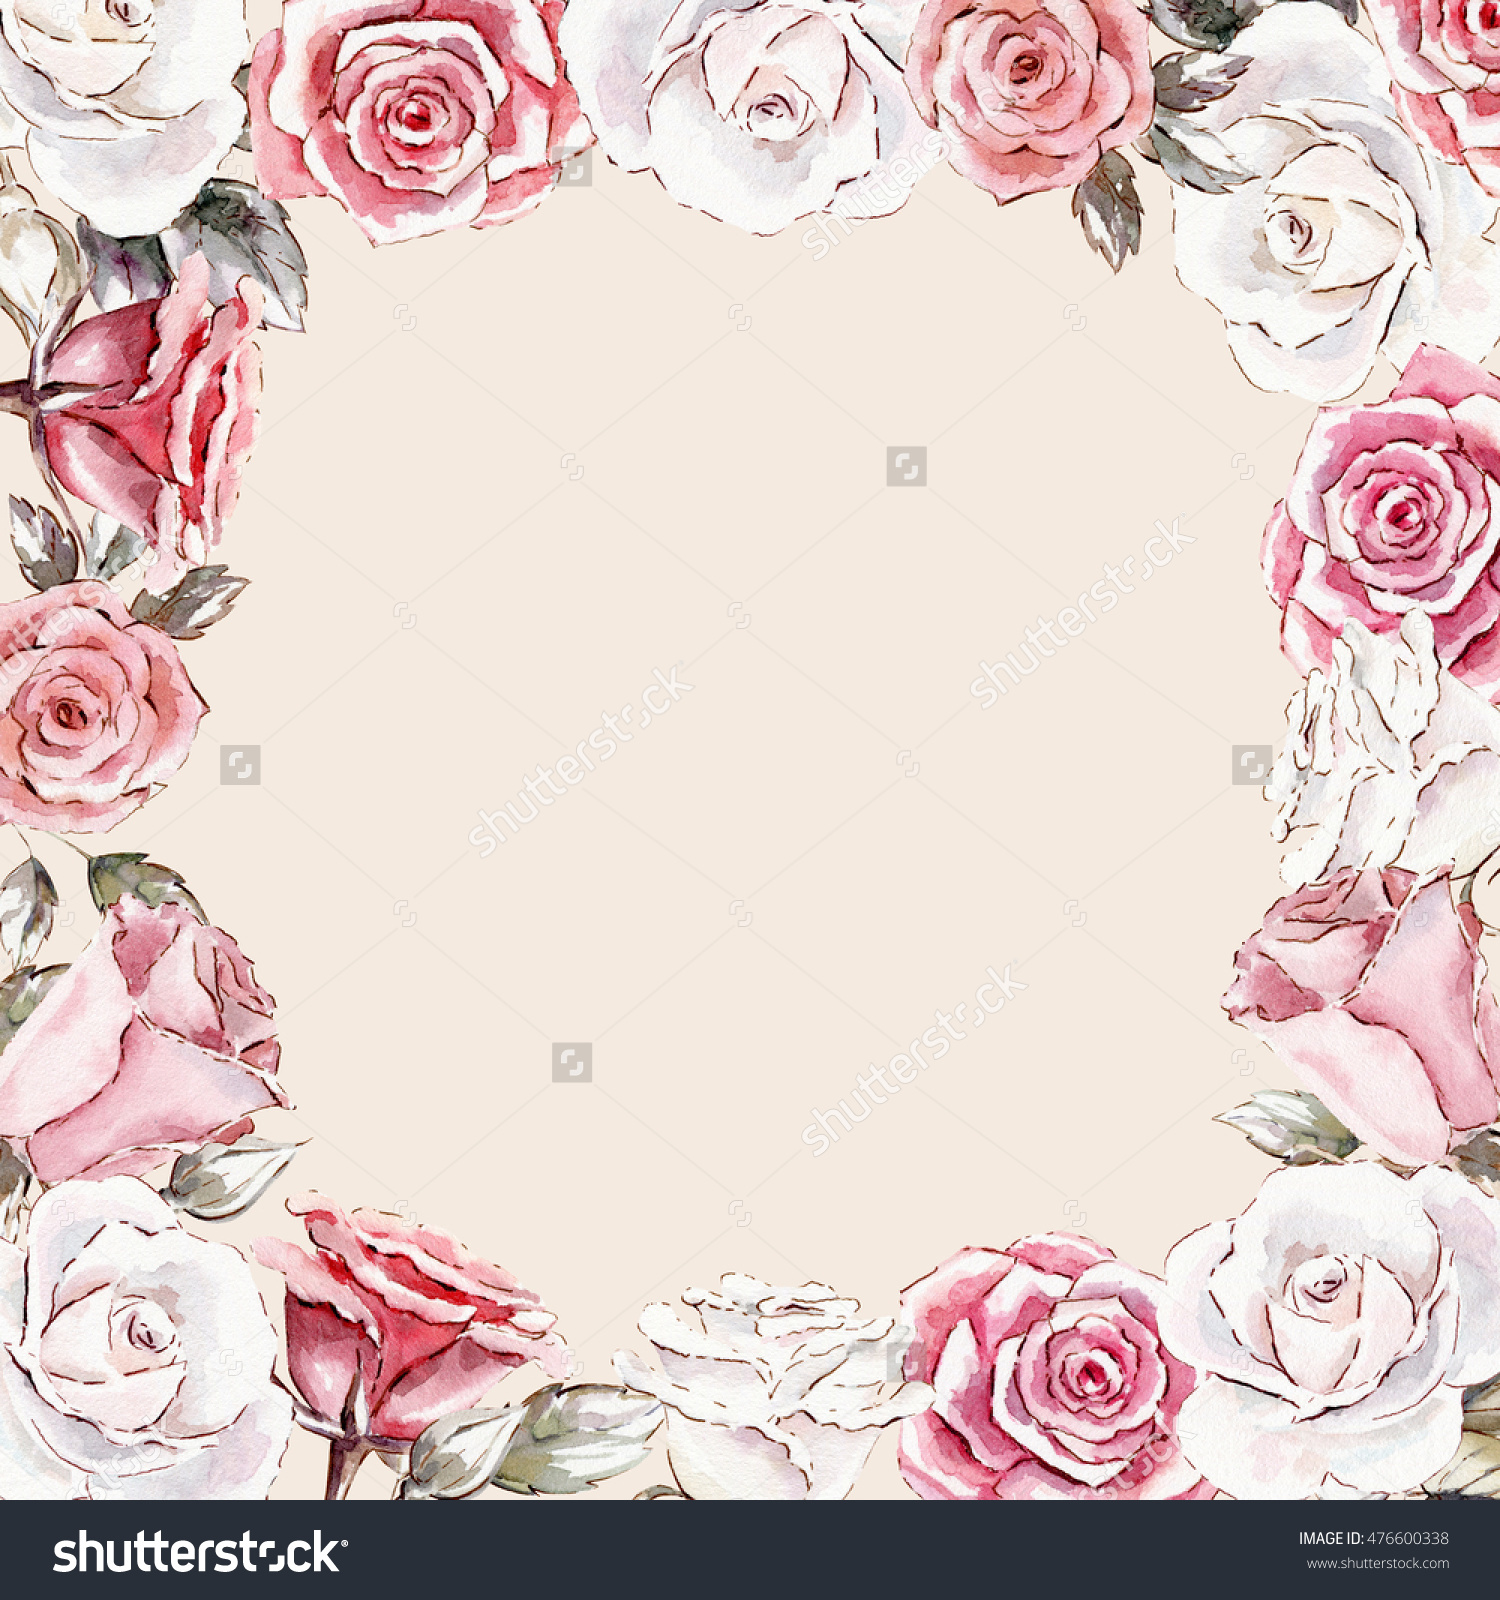 Beautiful Hand Painted Watercolor Mockup Clipart Template Of Roses.